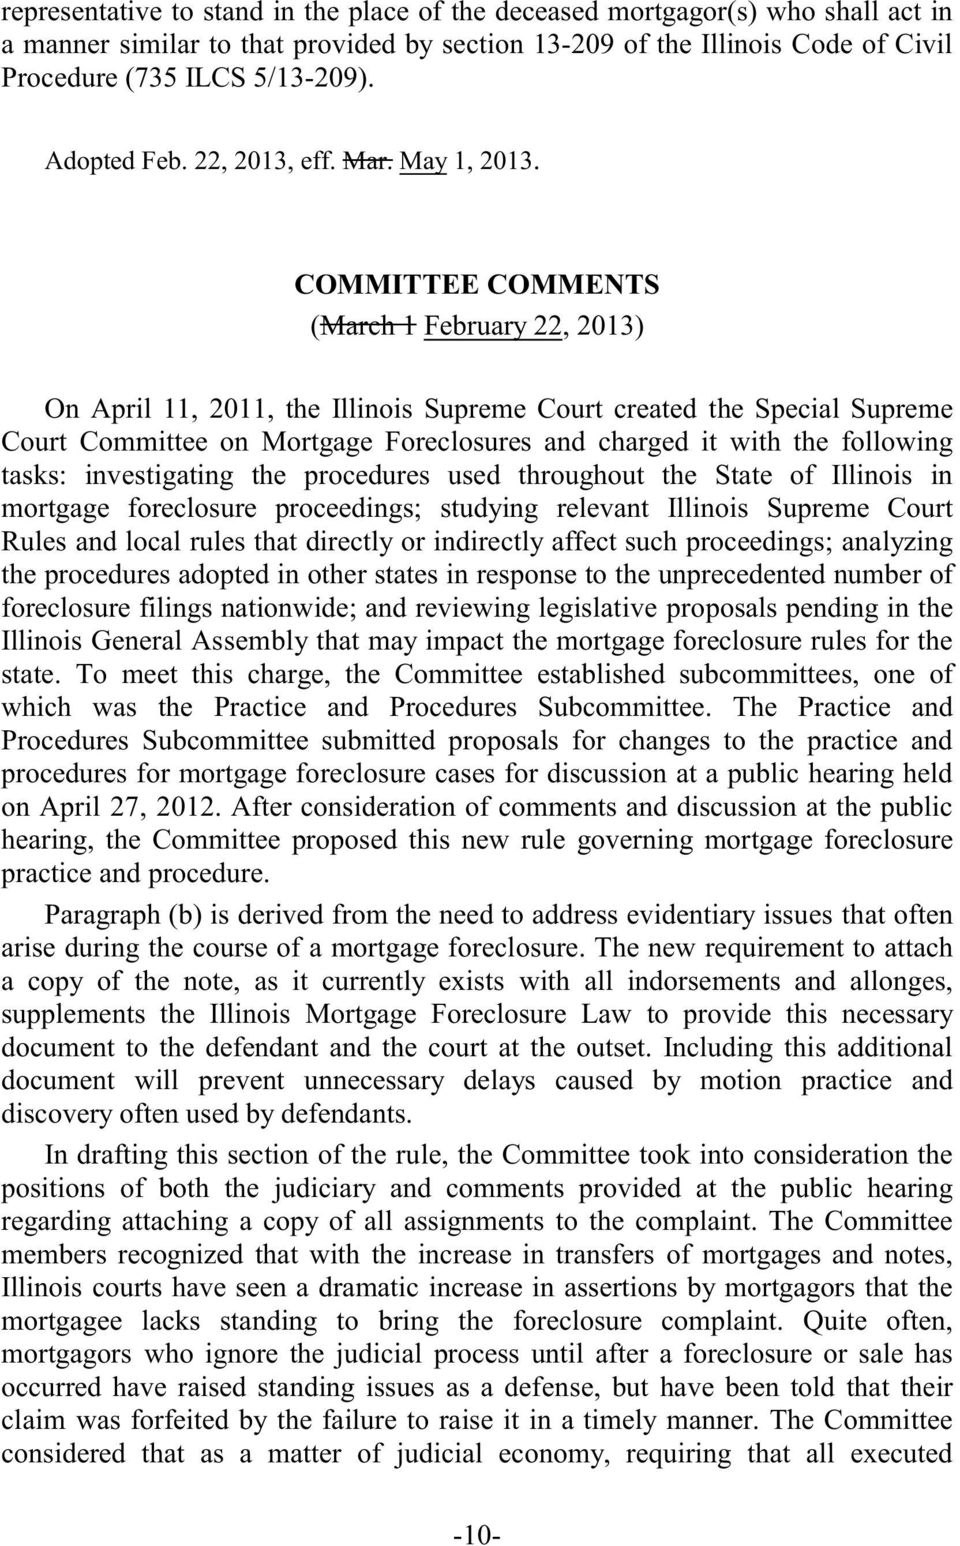 COMMITTEE COMMENTS (March 1 February 22, 2013) On April 11, 2011, the Illinois Supreme Court created the Special Supreme Court Committee on Mortgage Foreclosures and charged it with the following